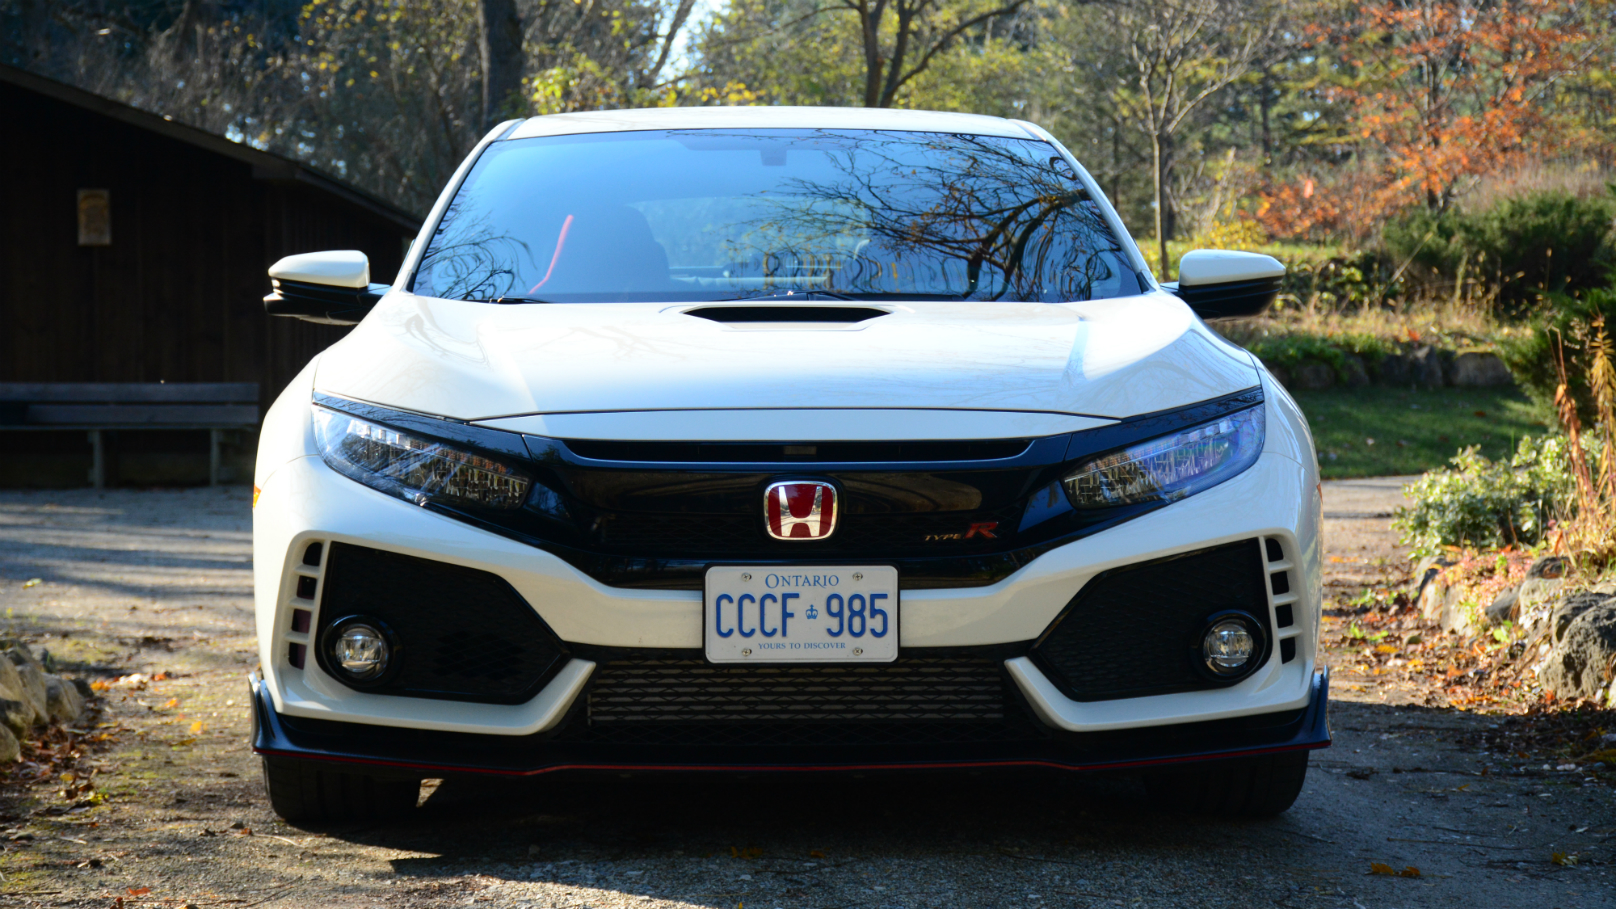 Driving the Honda Civic Type R